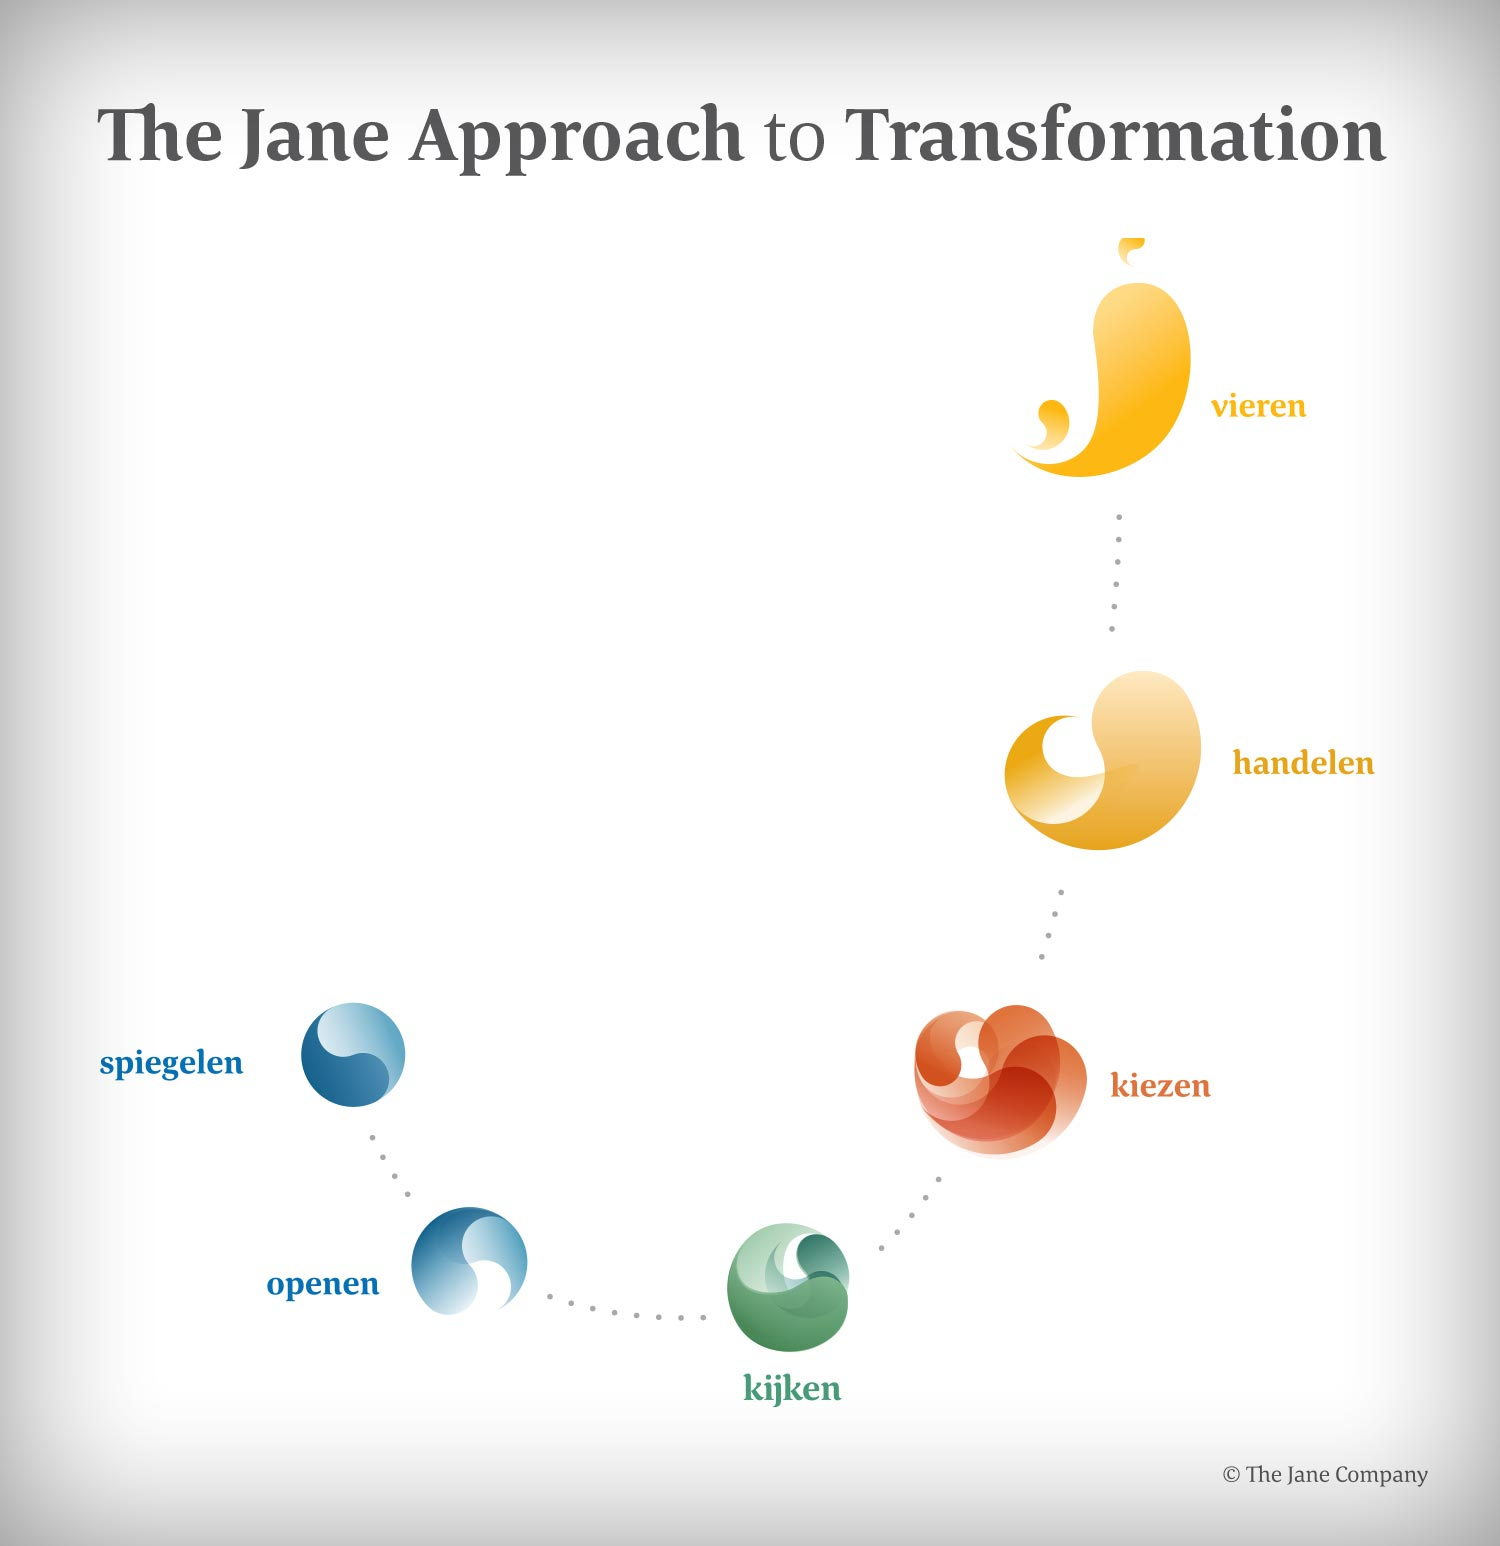 The Jane Approach to Transformation